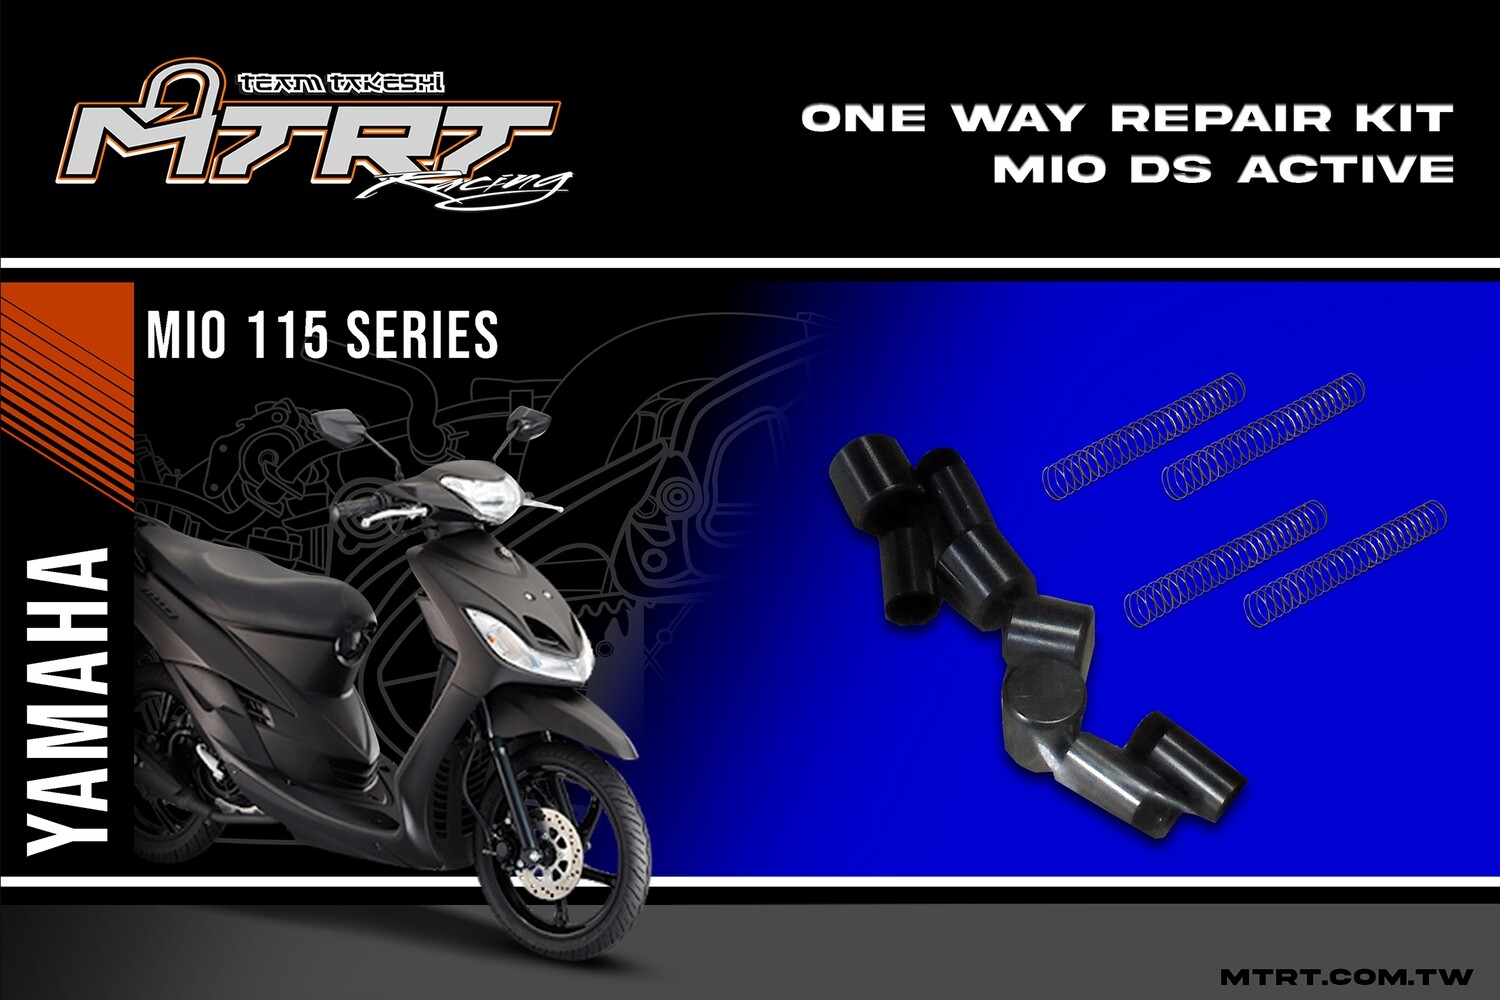 ONE WAY REPAIR KIT MIO DS